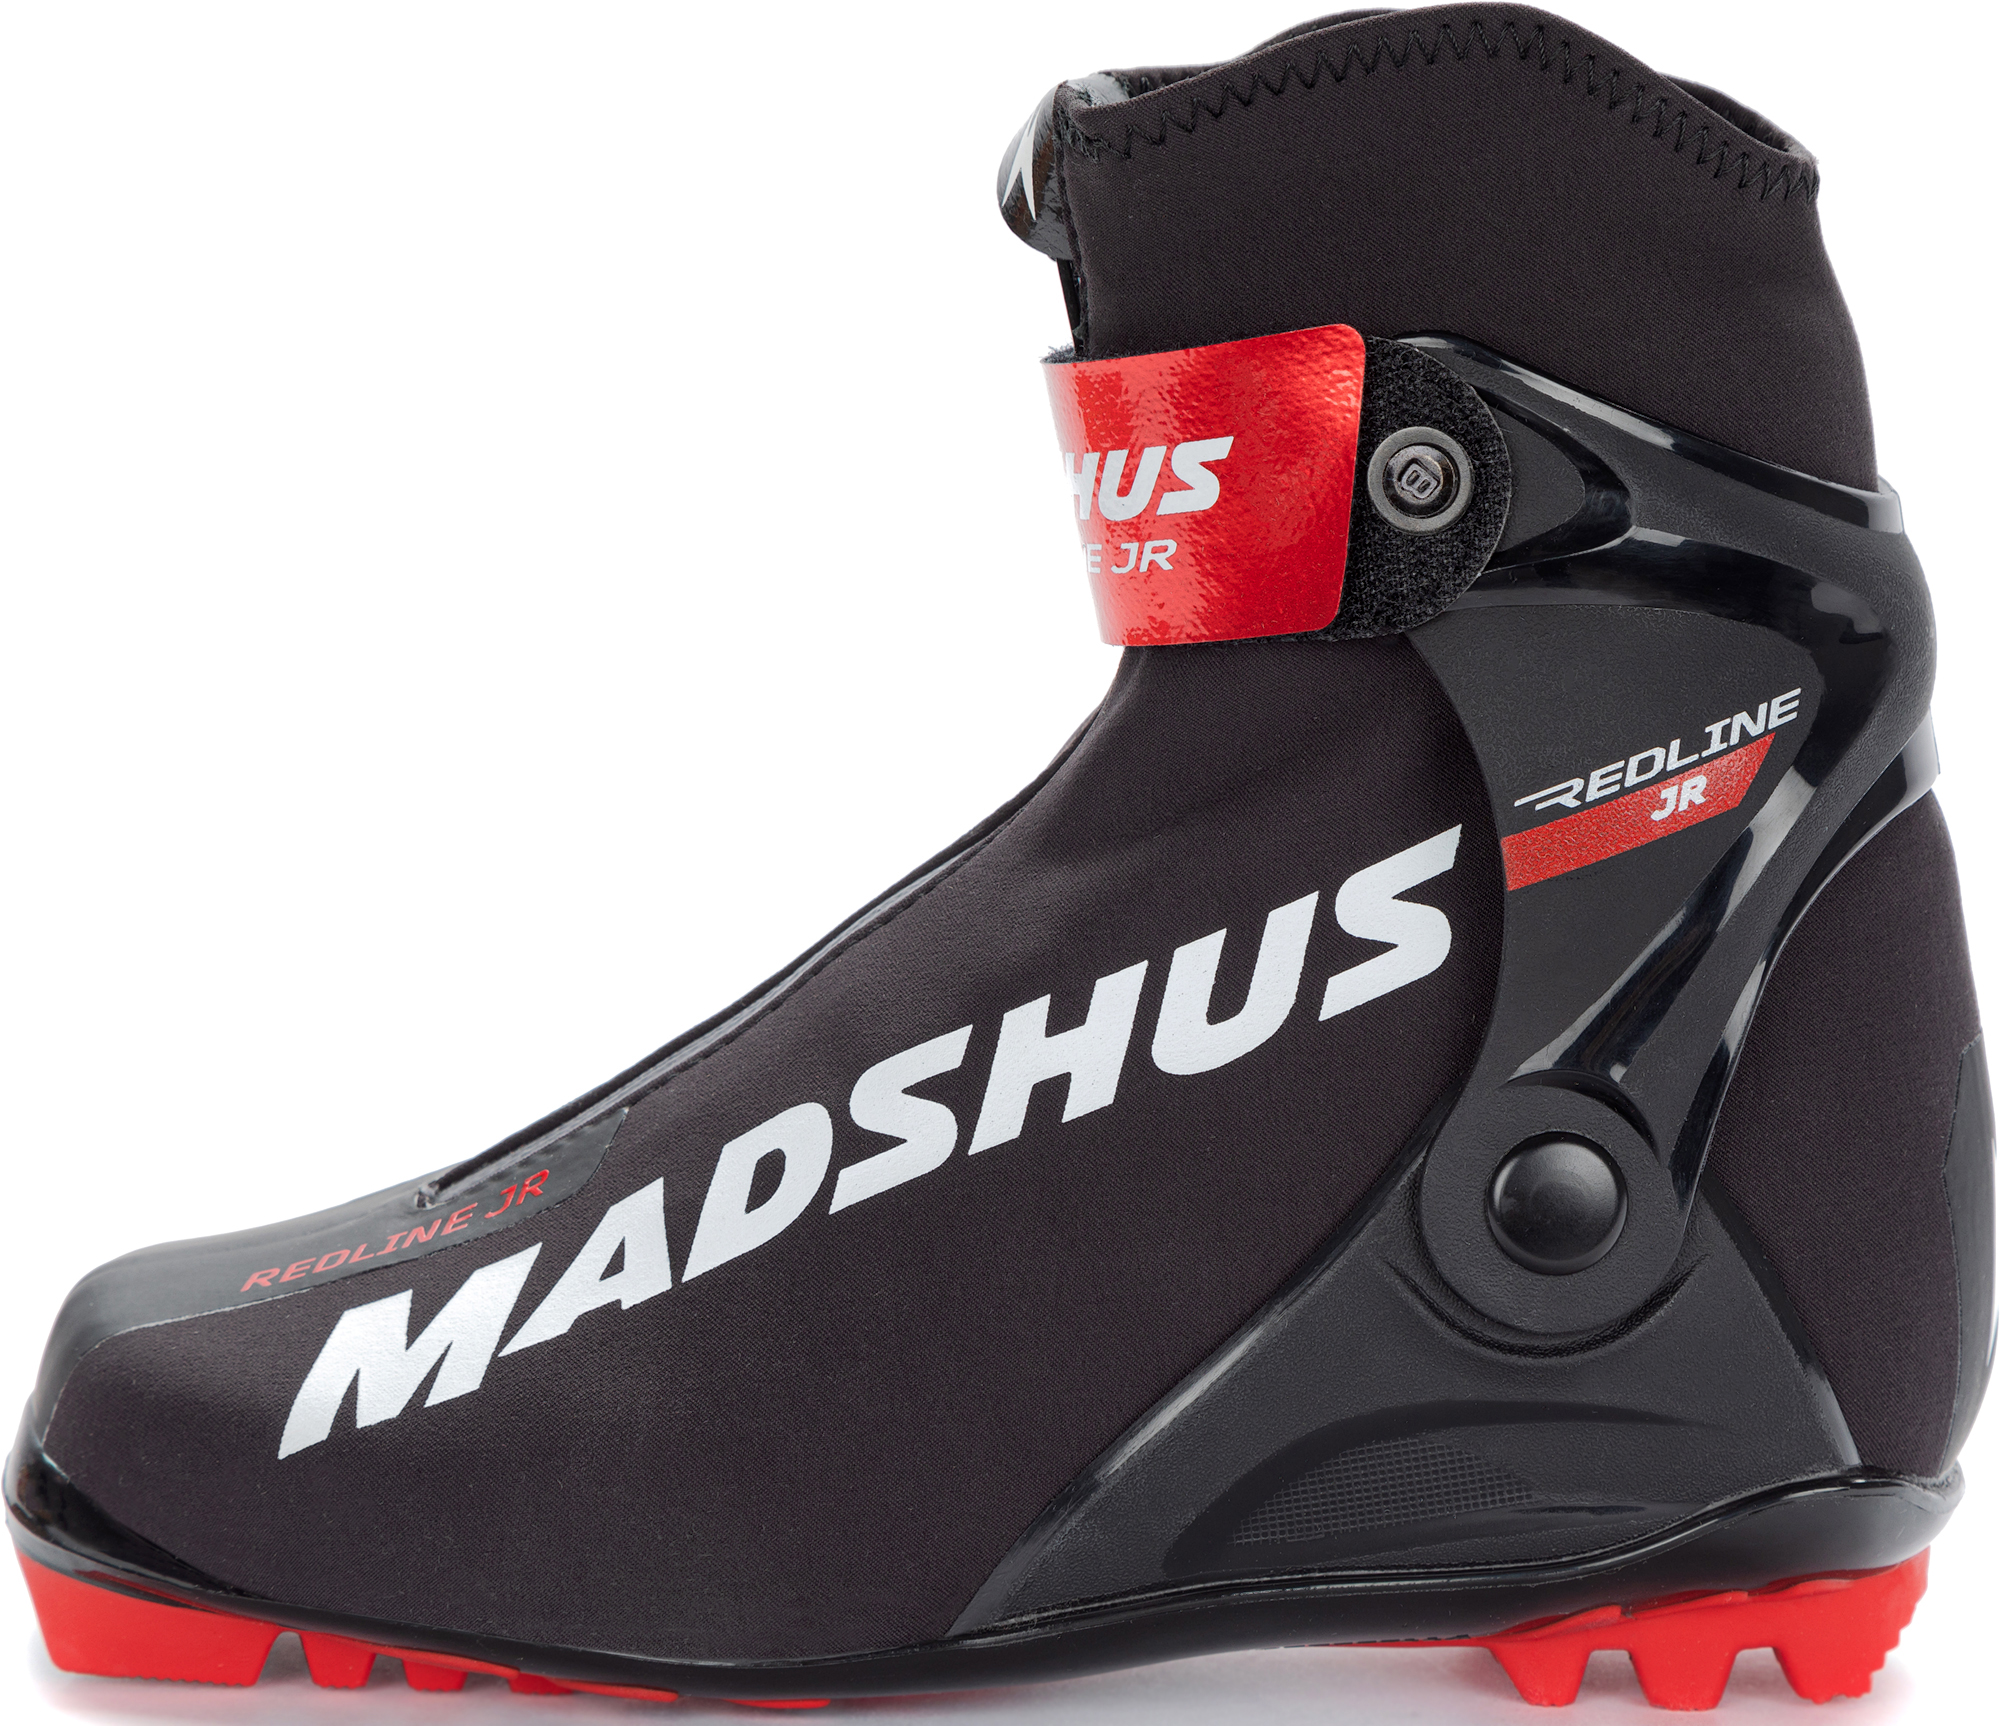 Madshus REDLINE JR Kids cross-country ski boots